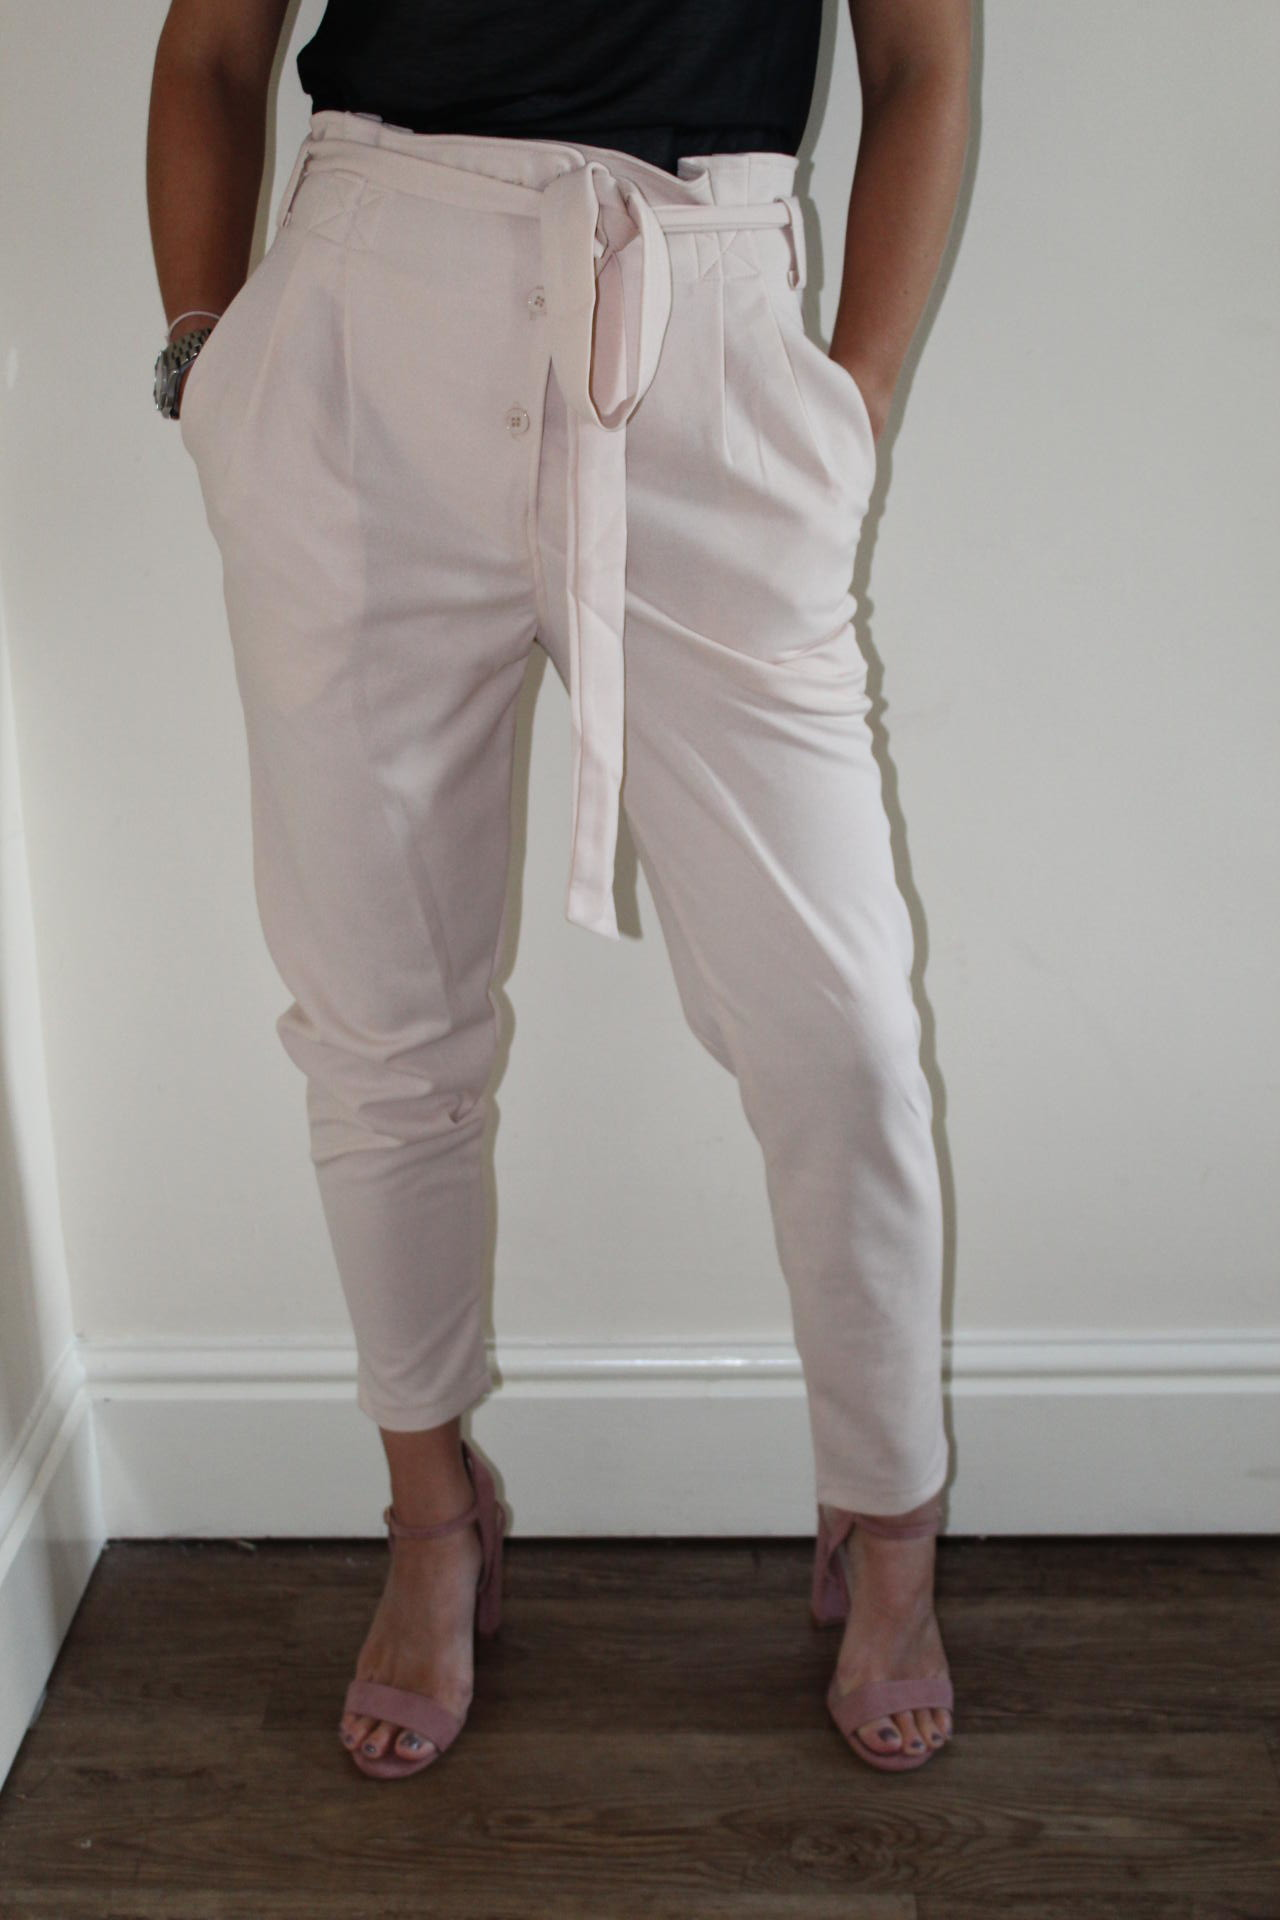 weekday lookbook tuesday trousers